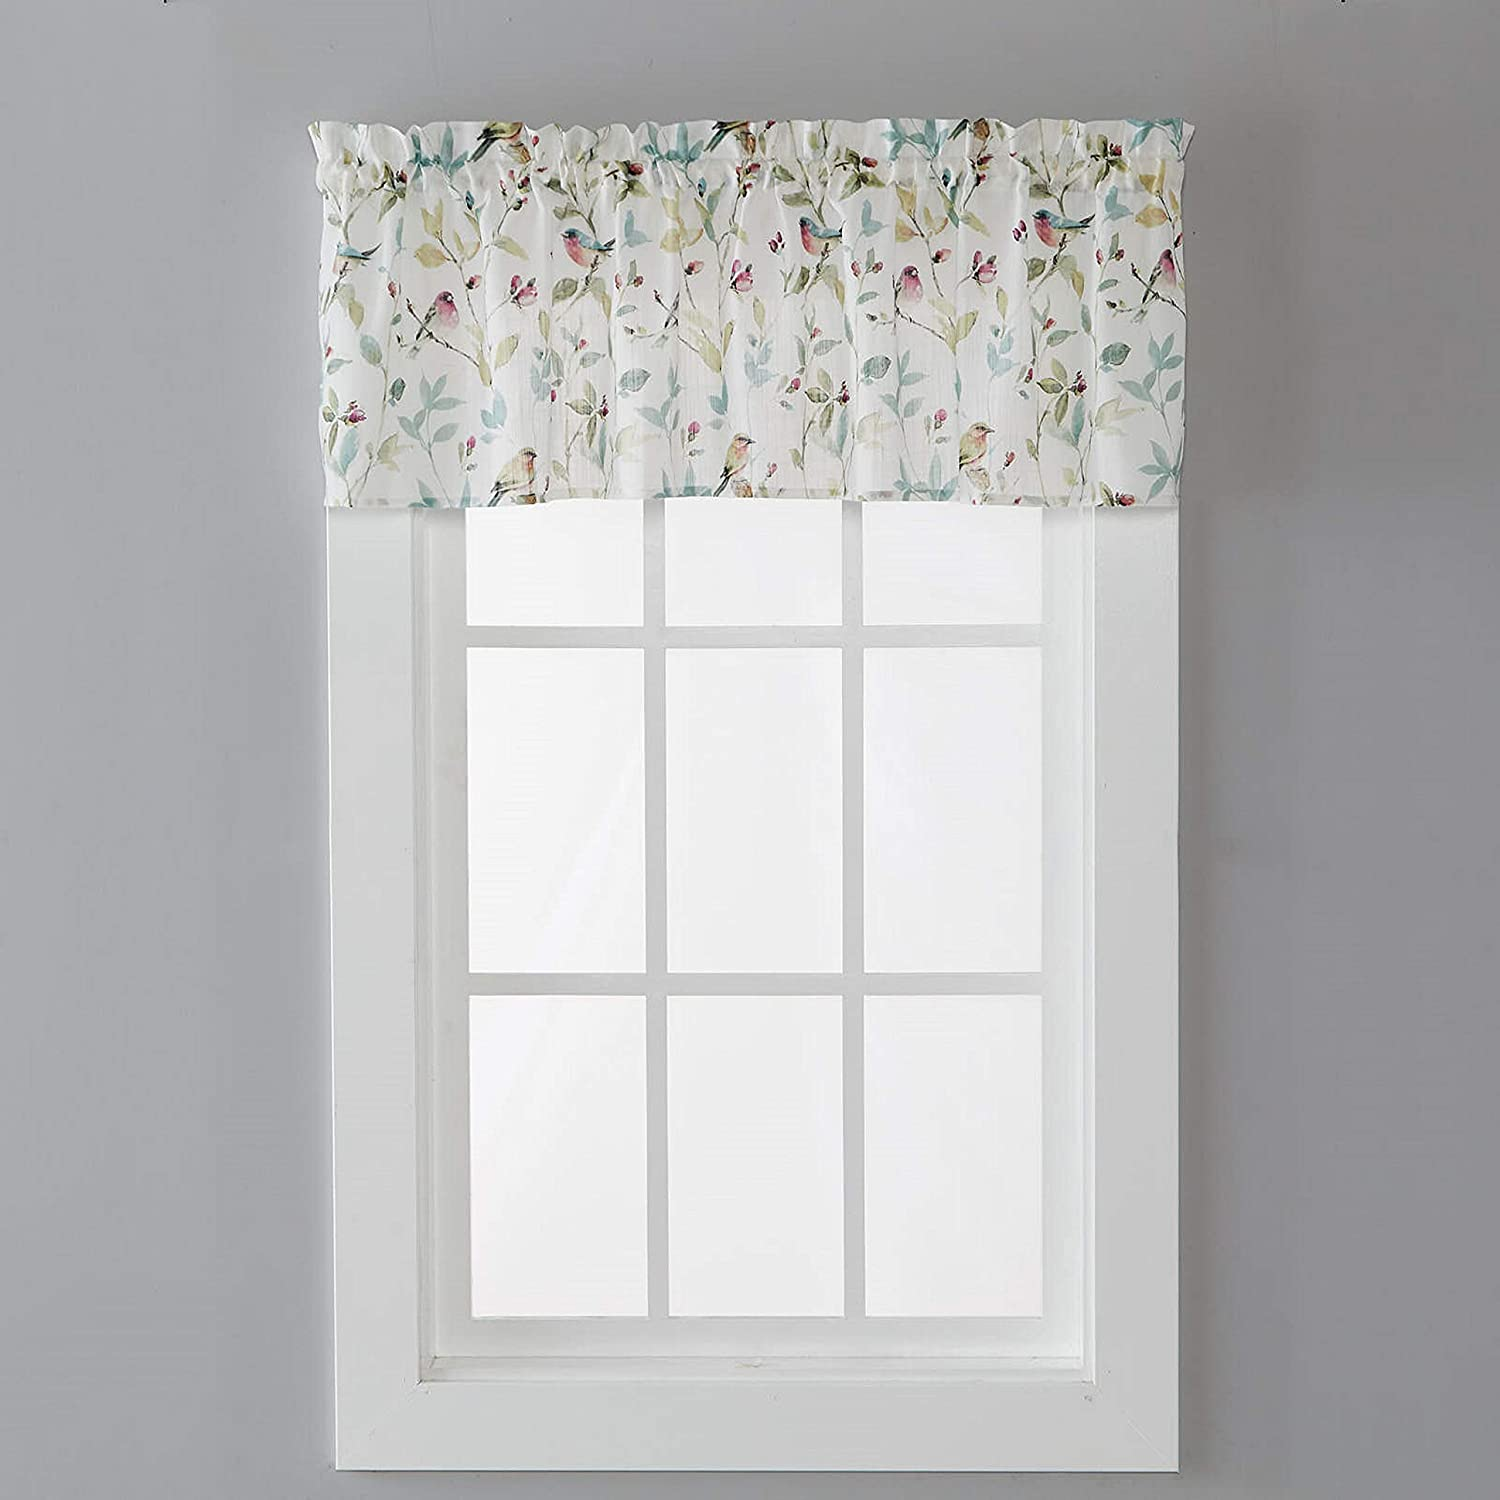 SKL Home by Saturday Knight Ltd. Aviary Valance, 54 Inches x 13 Inches, Pastels